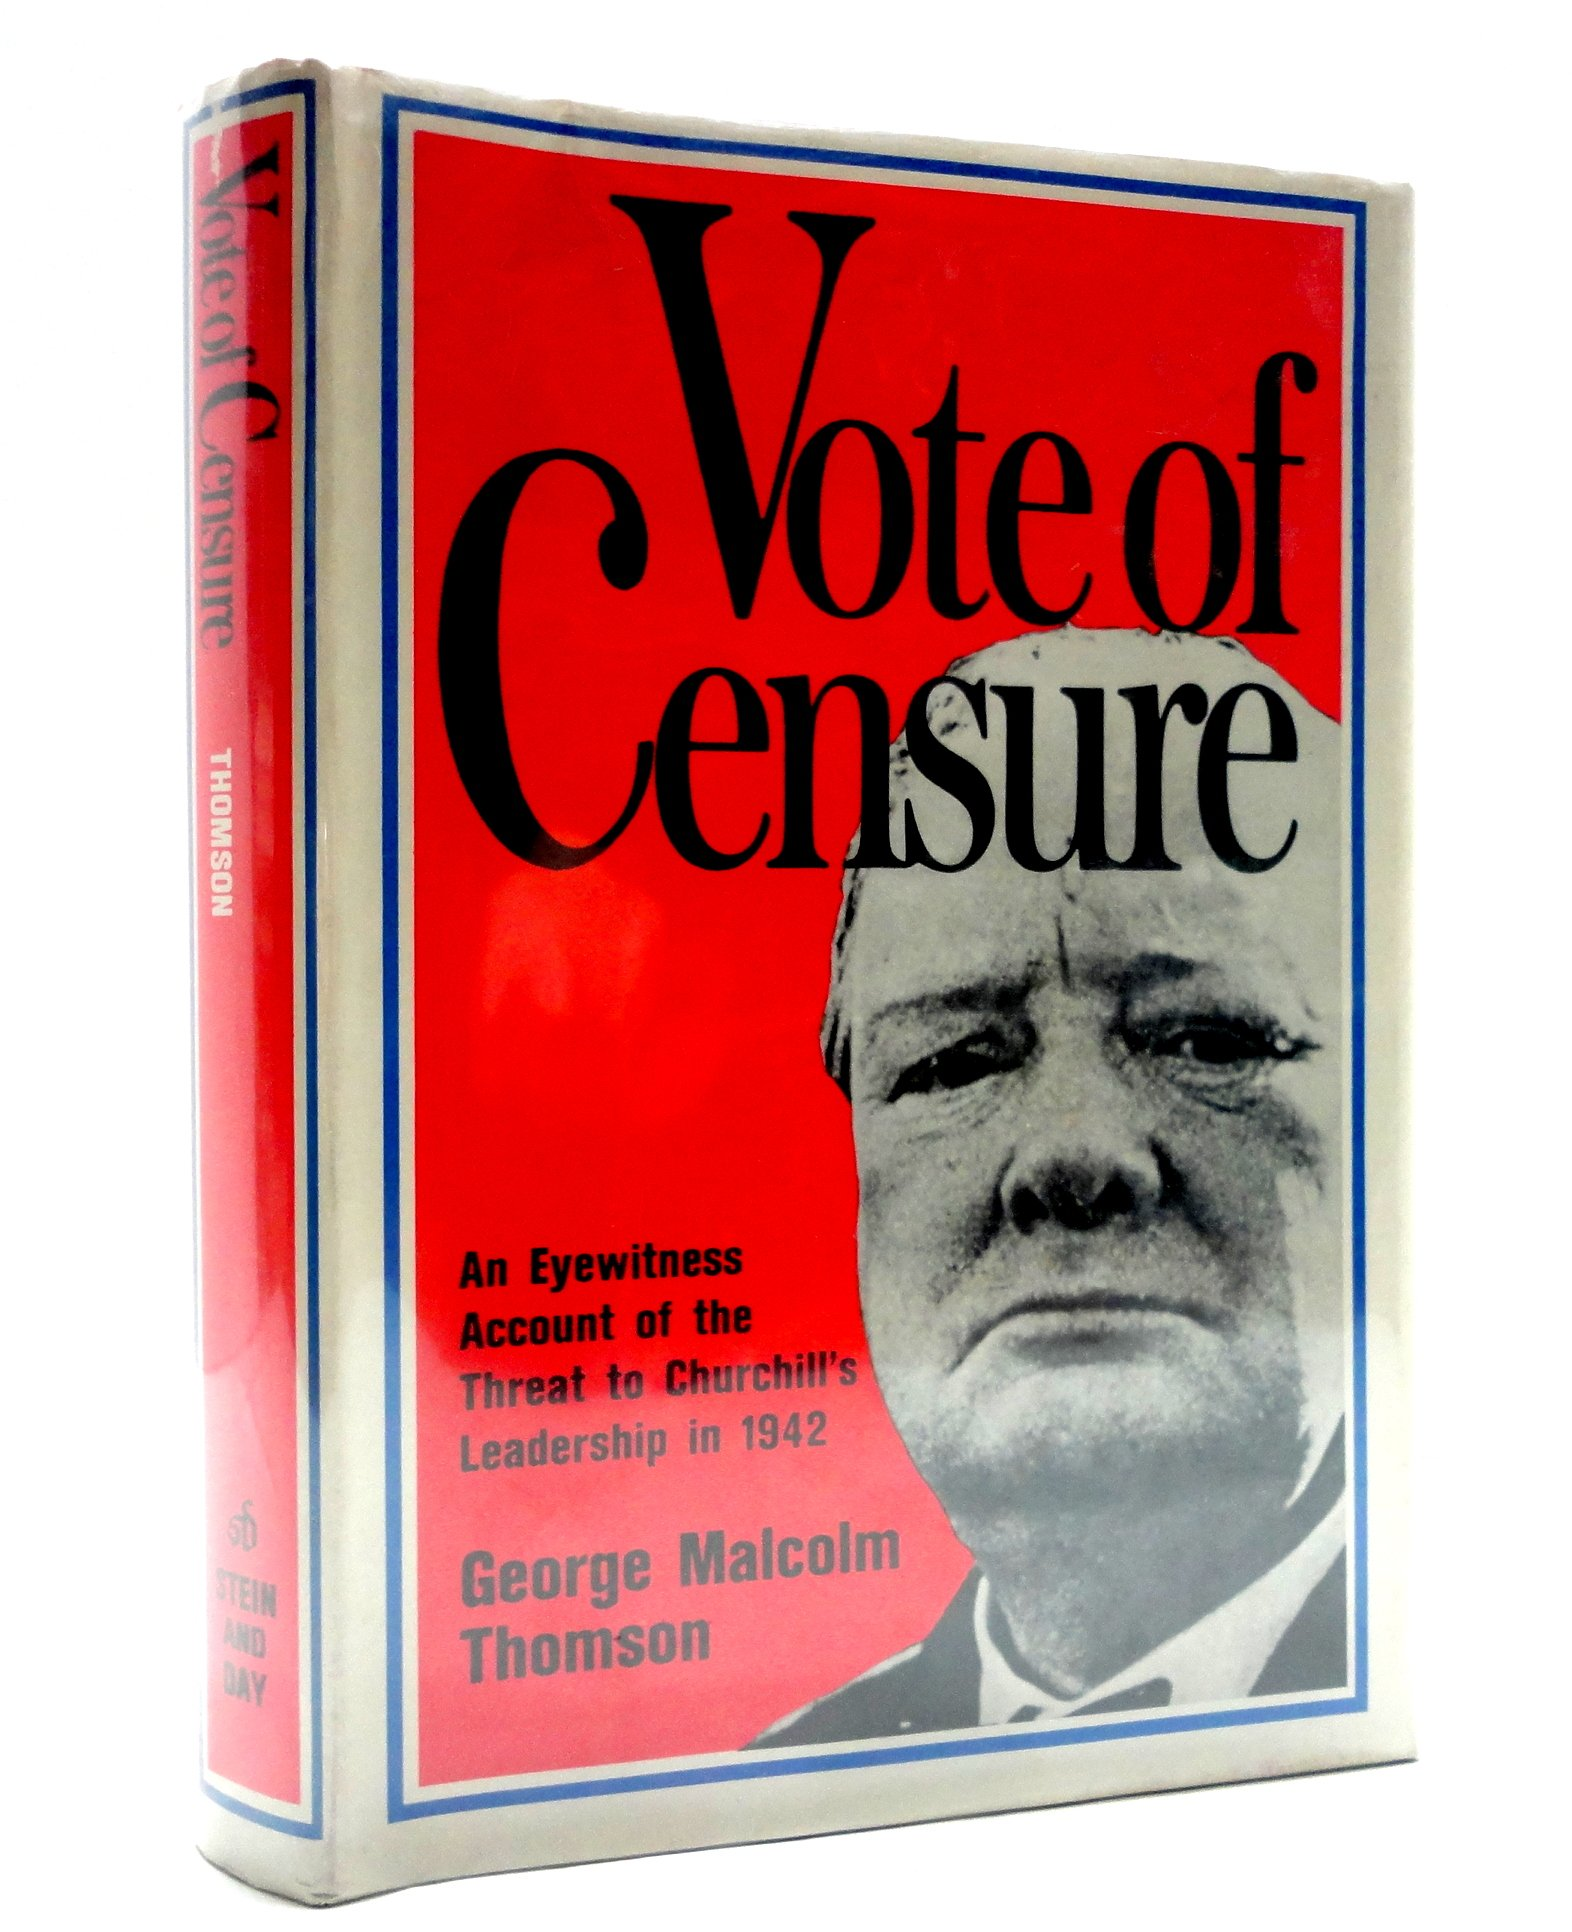 Vote of Censure: An Eyewitness Account of the Threat to Churchill's Leadership i, Churchill, Winston - Thomson, George Malcolm